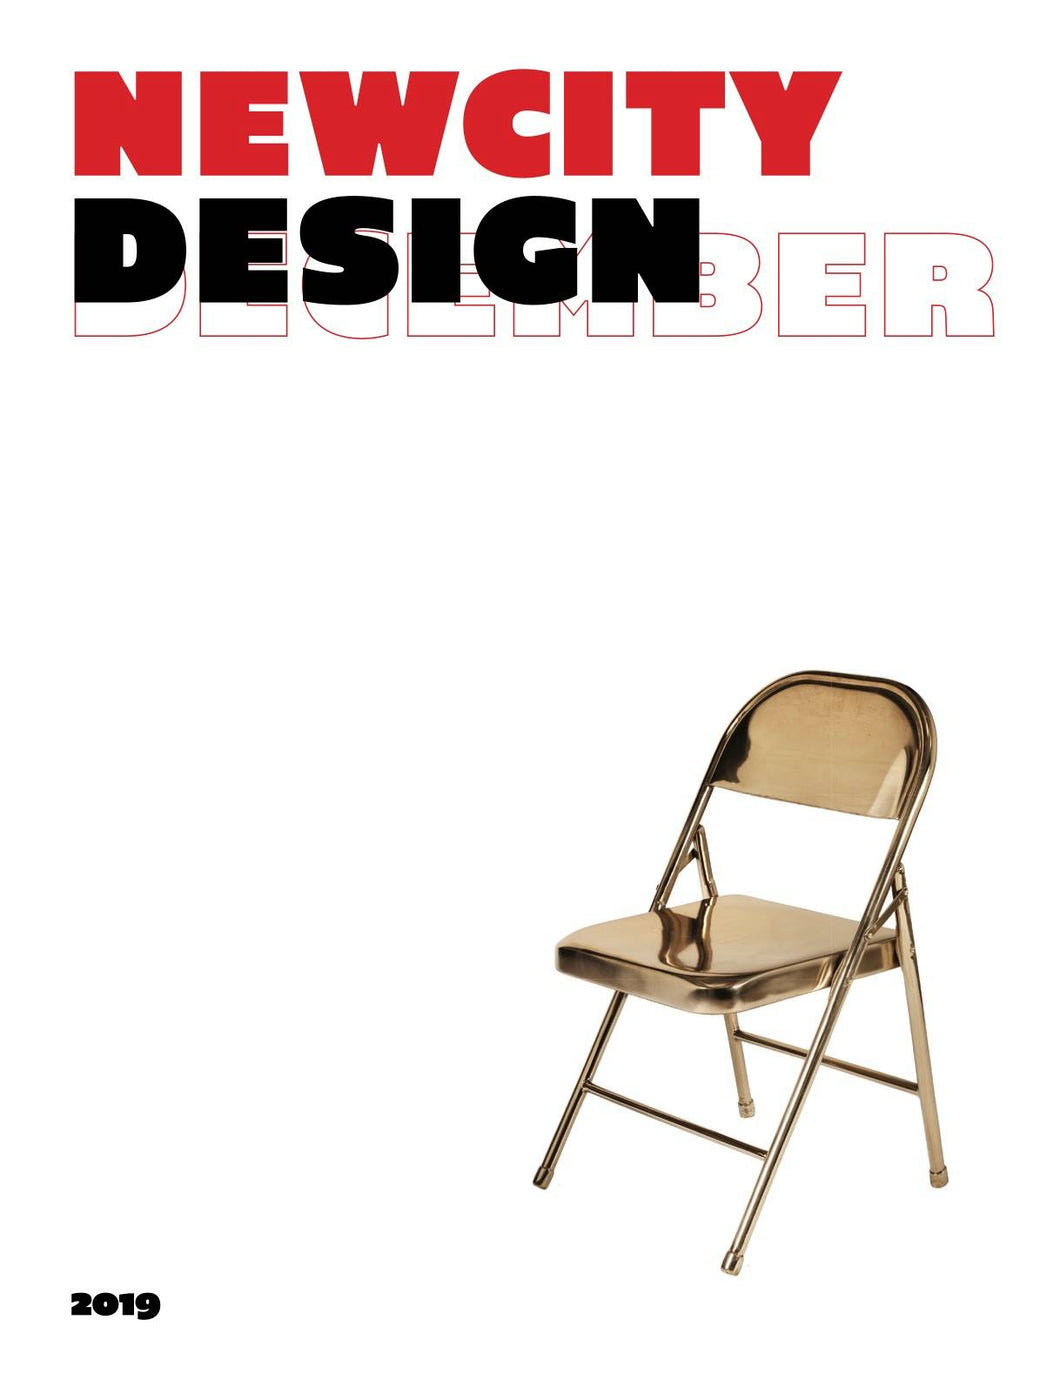 December 2019: The Design Issue